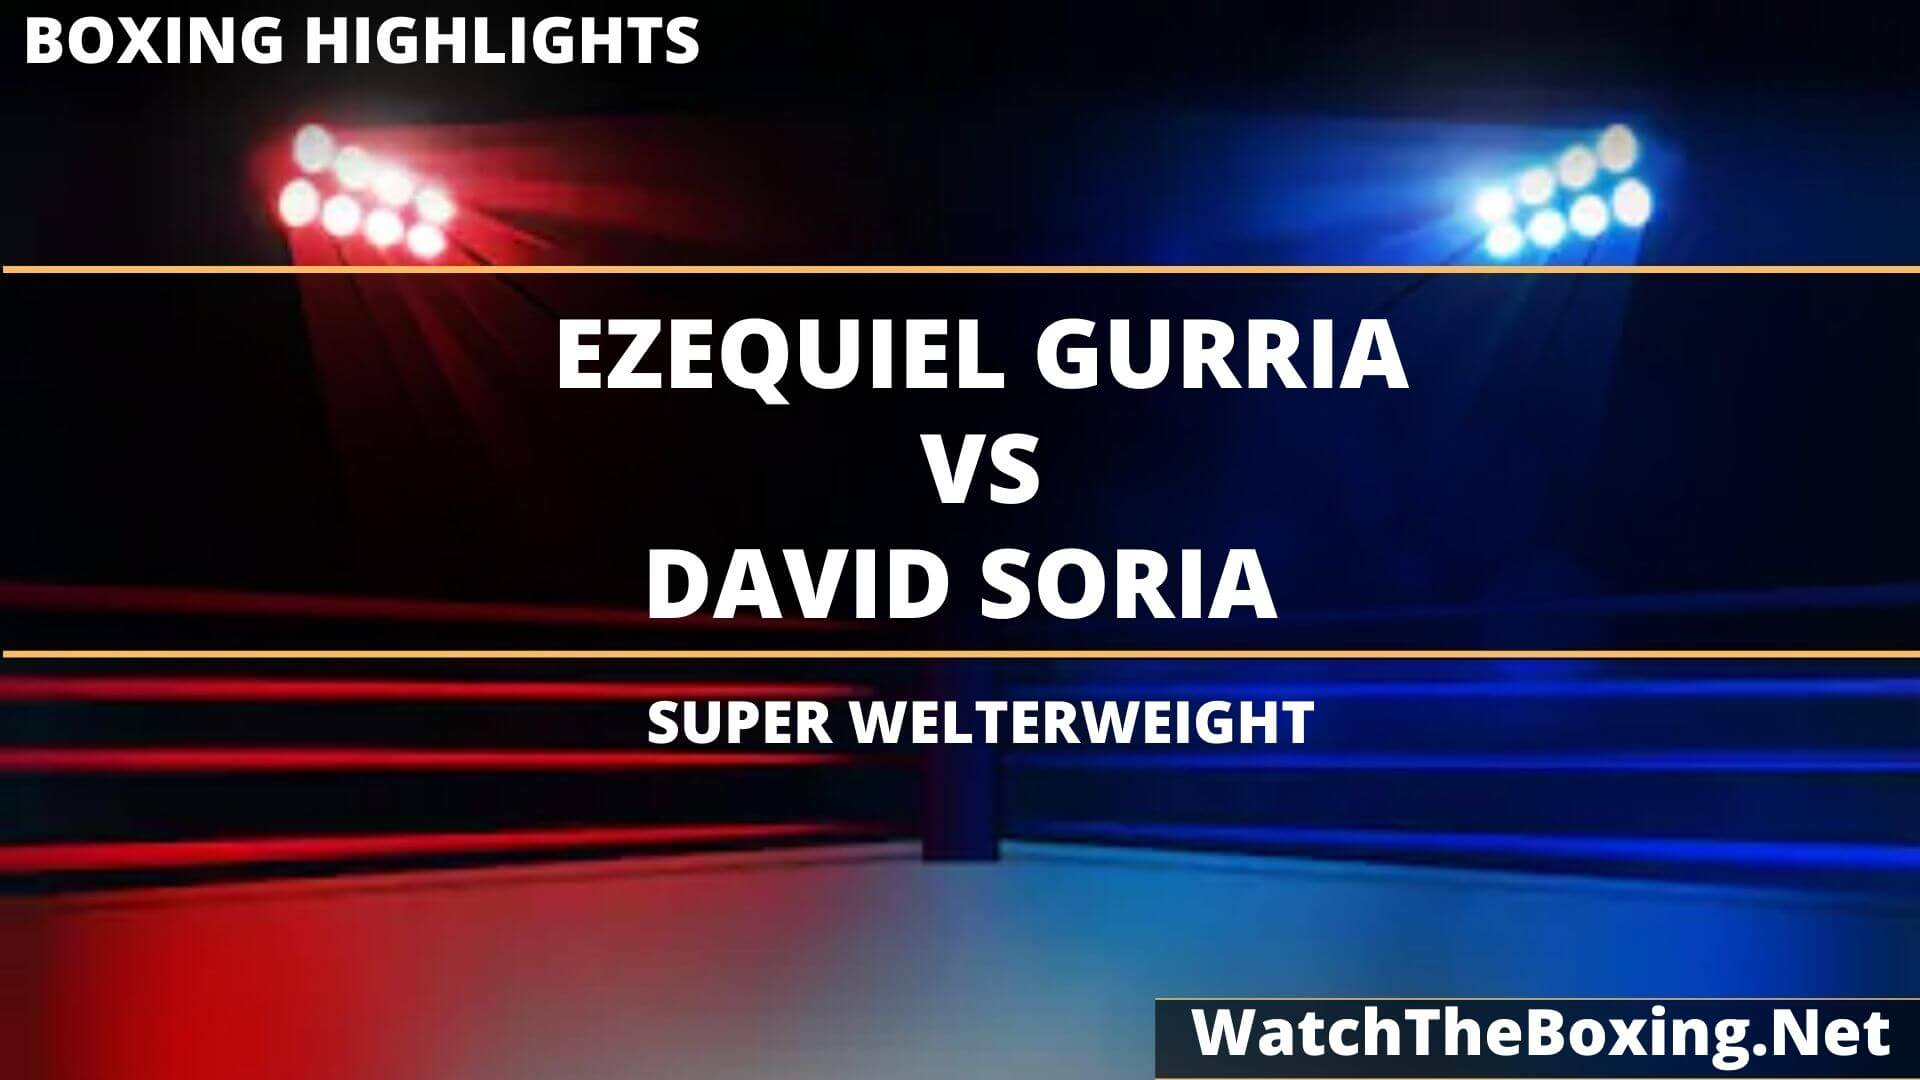 Ezequiel Gurria Vs David Soria Highlights 2020